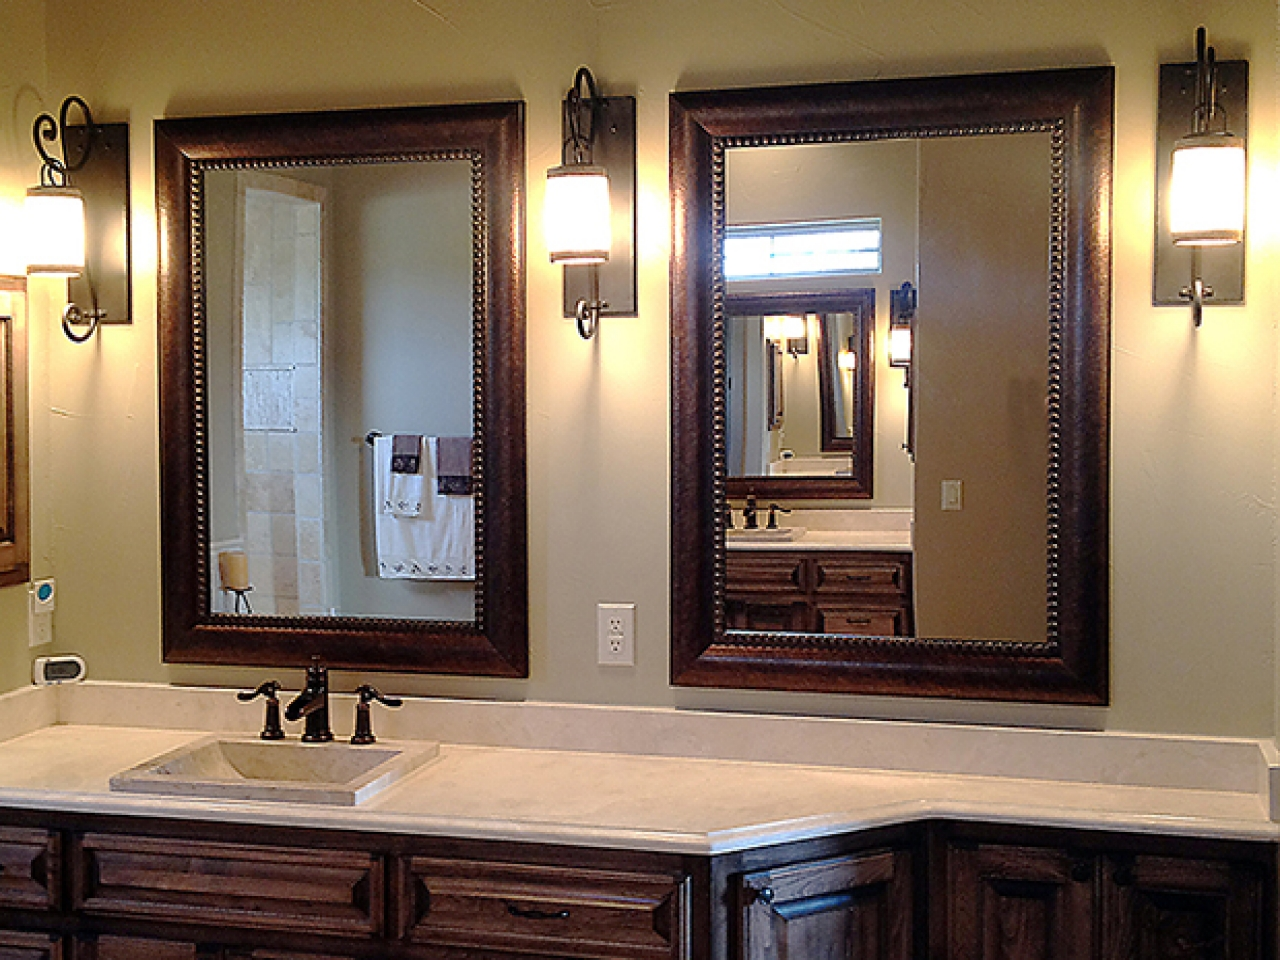 Framed Bathroom Mirrors also double wide bathroom mirror also inexpensive bathroom mirrors